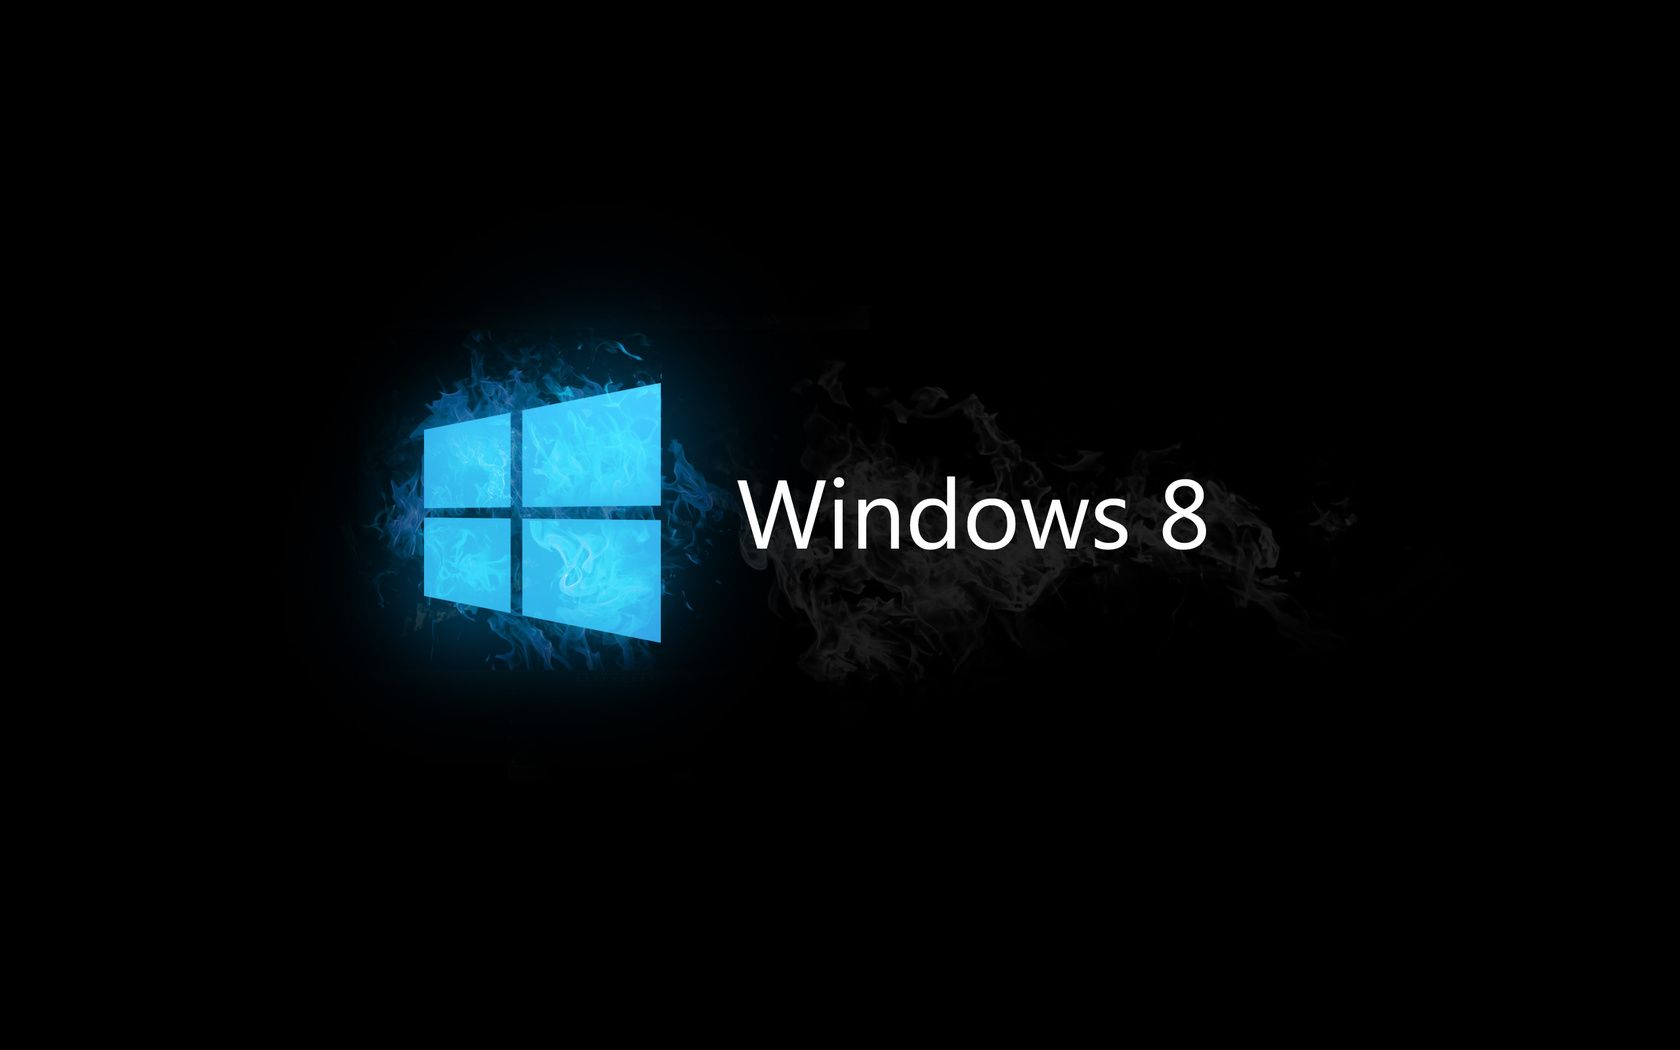 Windows 8 Hd Desktop Wallpaper High Definition Fullscreen Mobile Windows Wallpaper Hd Wallpaper Desktop Windows 8